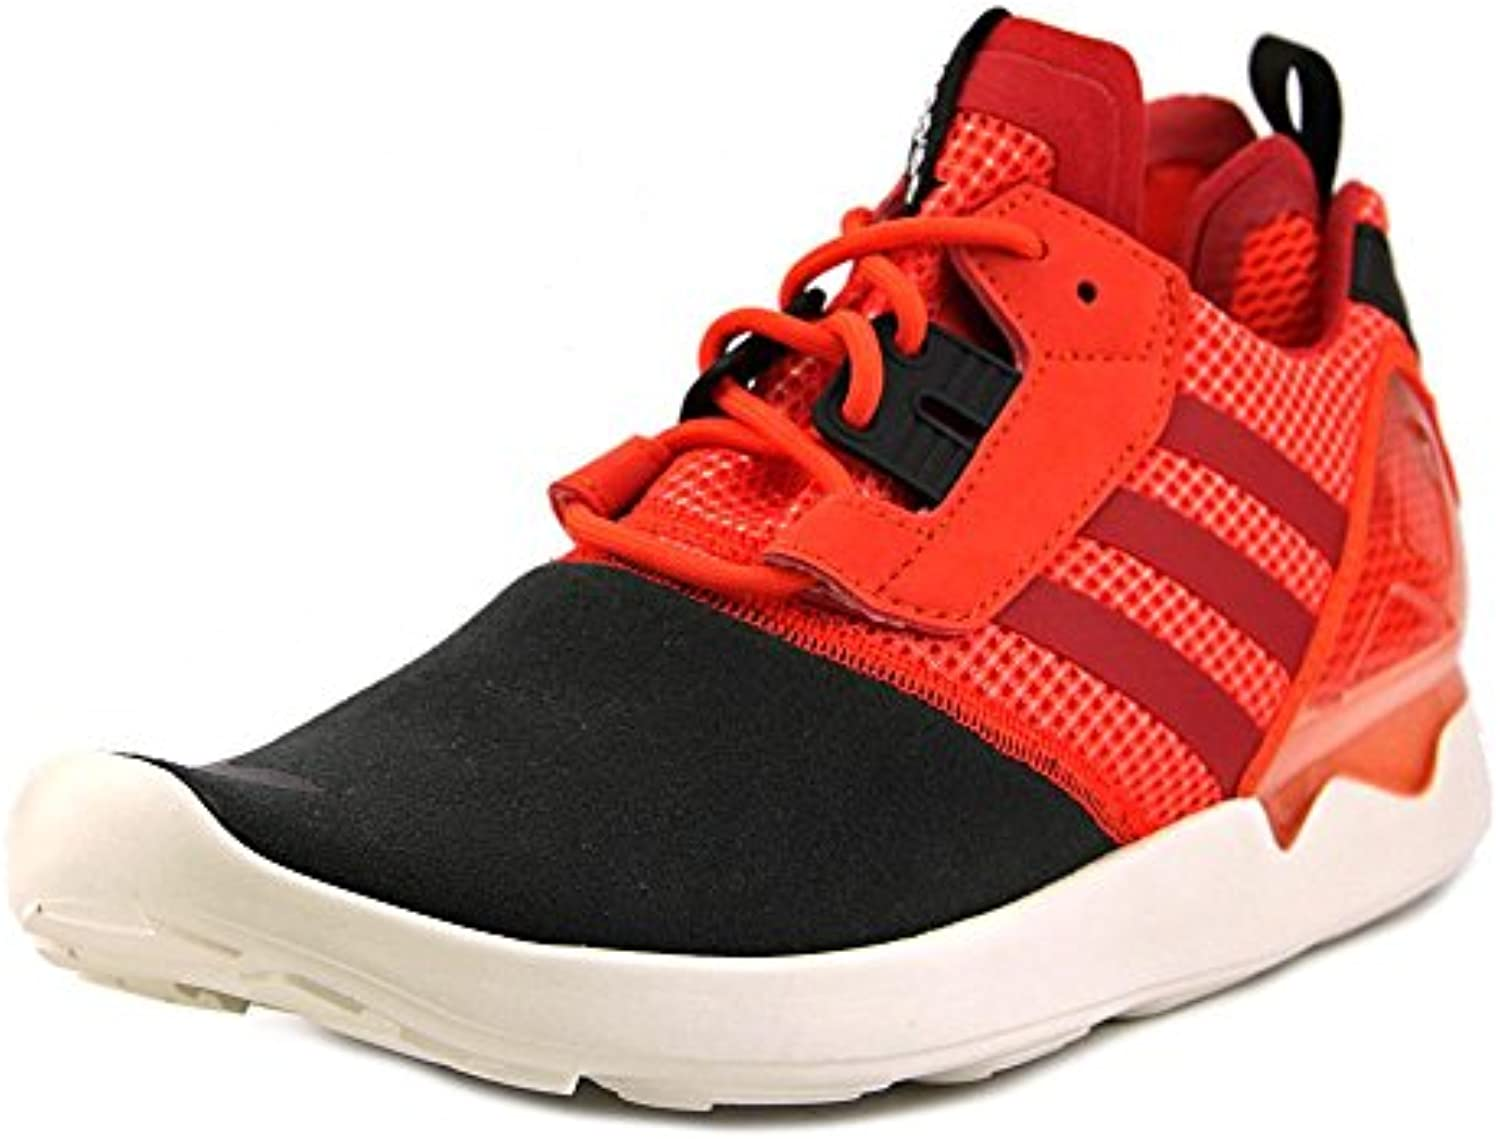 Adidas Zx 8000 Boost - Rosso   Nero, 10.5 D Us   Up-to-date Styling    Uomini/Donna Scarpa